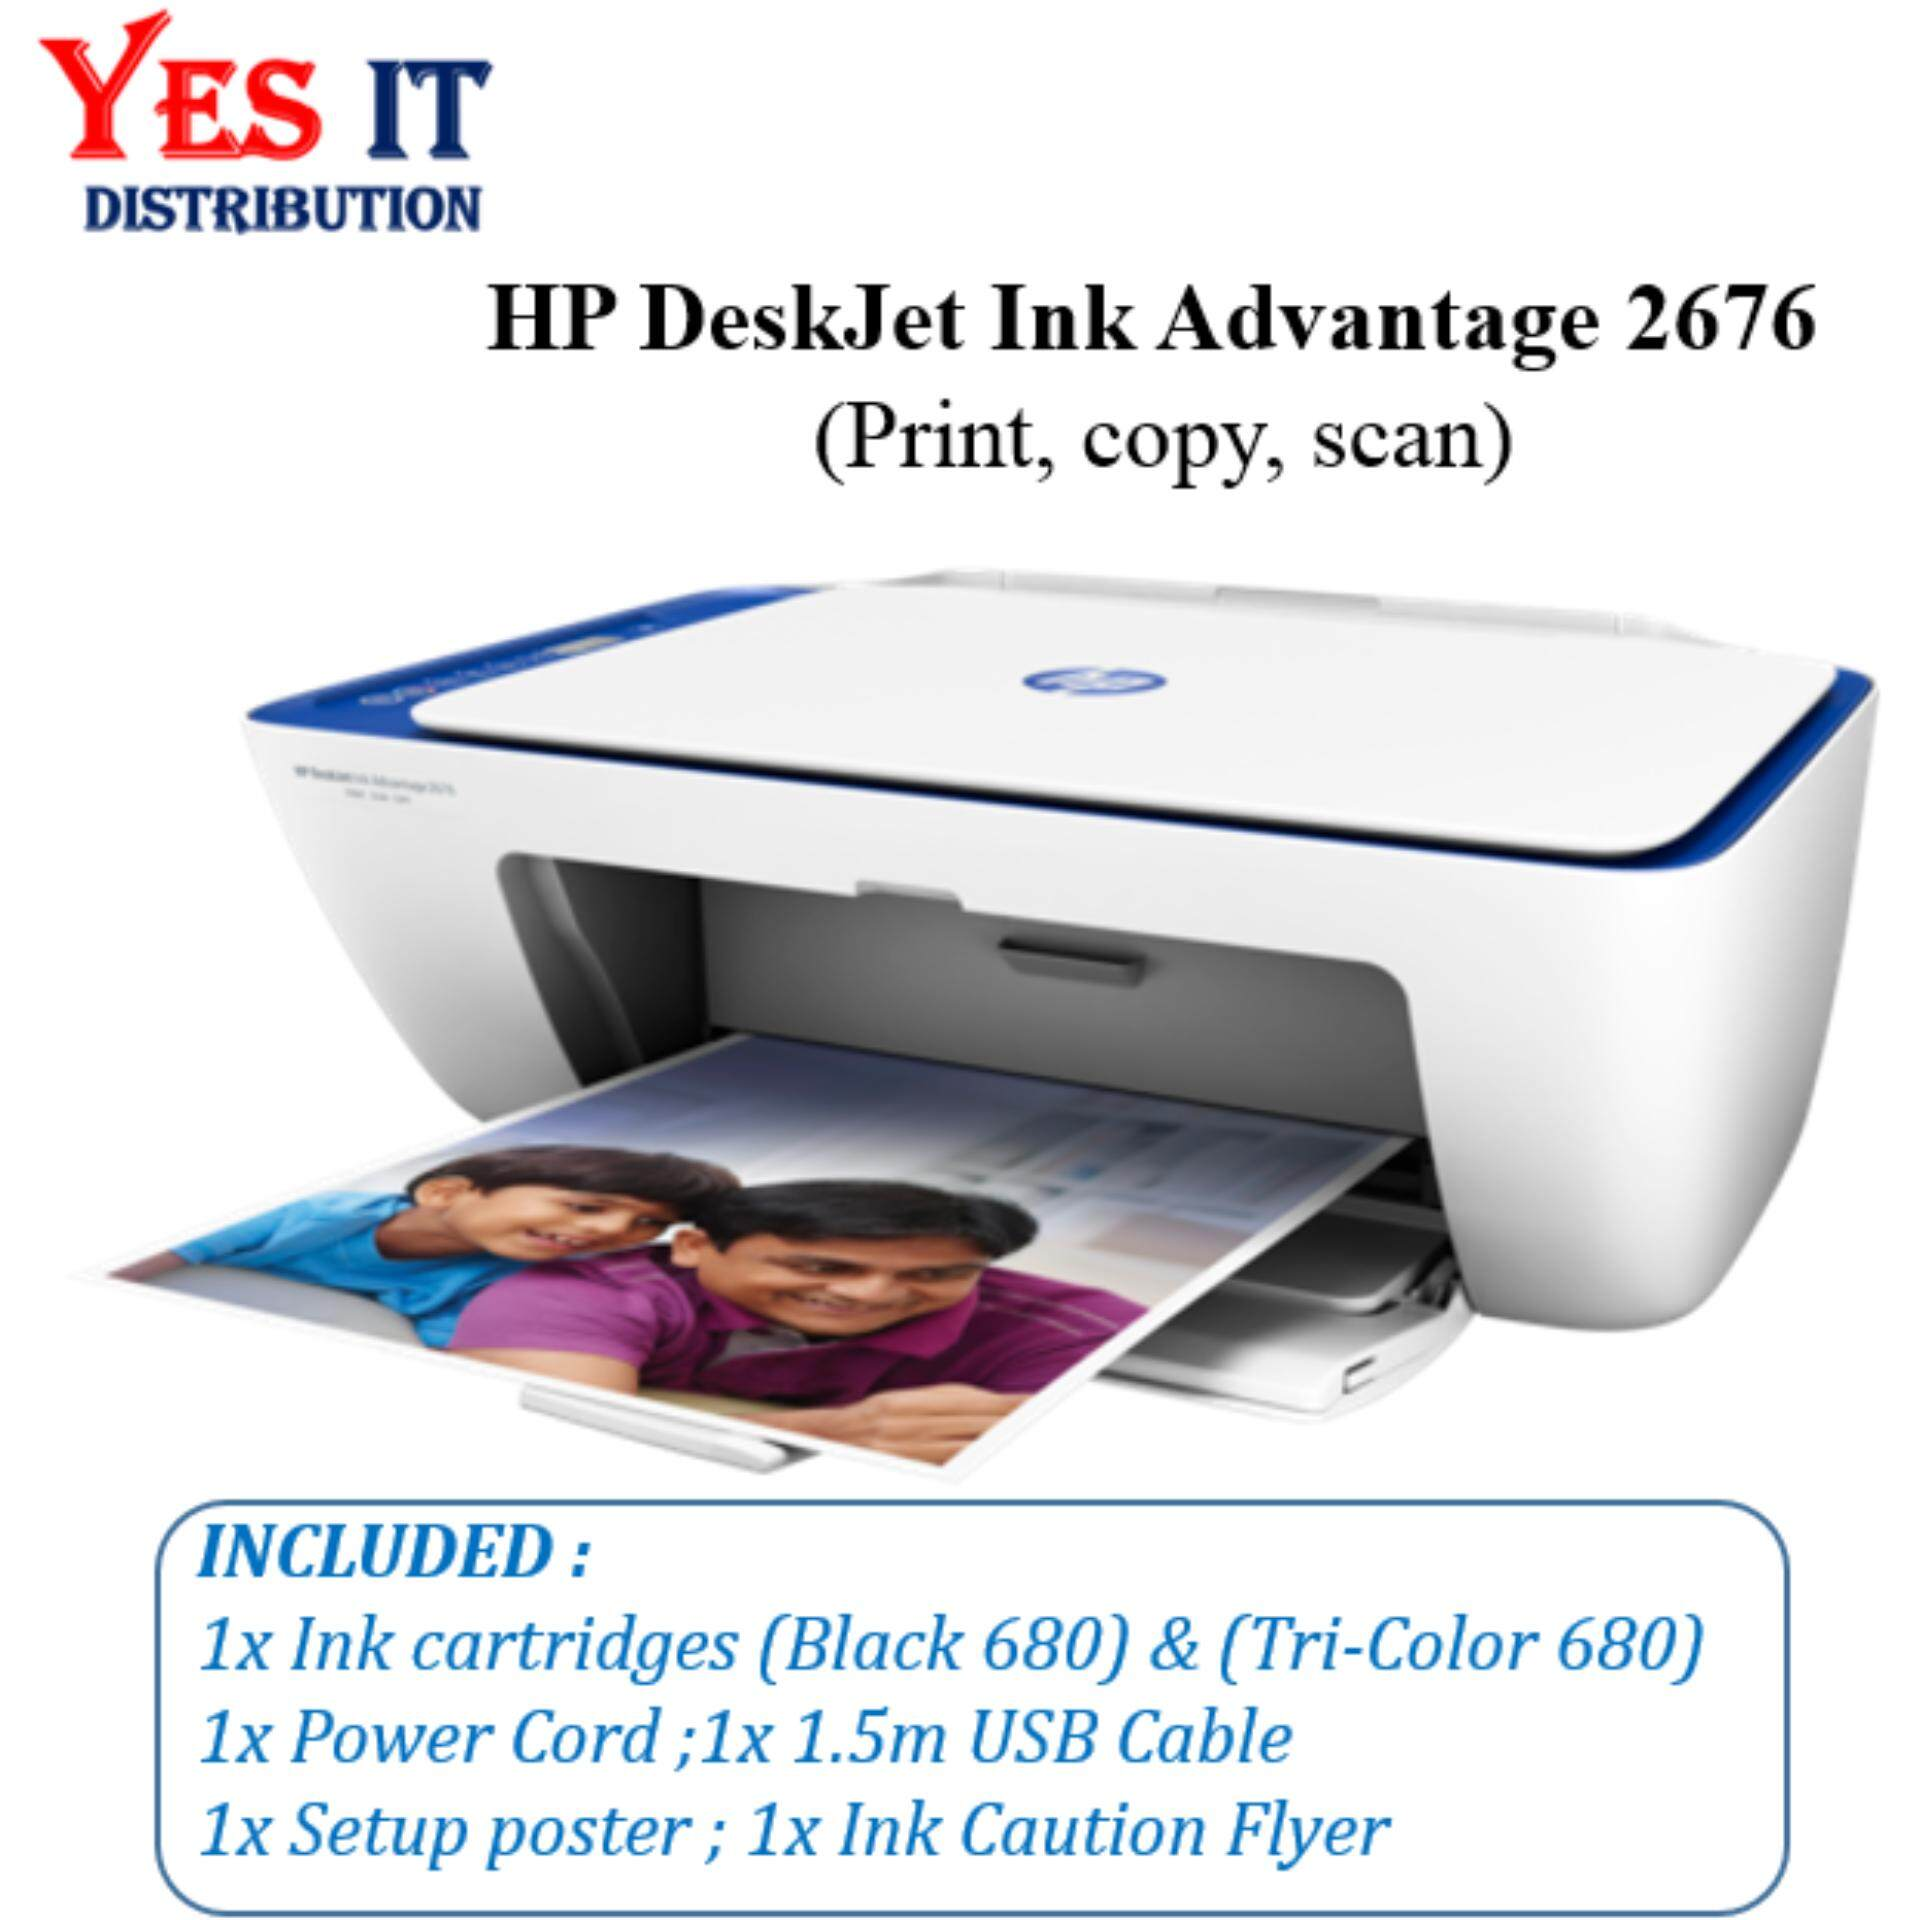 Hp Ink Jet For The Best Prices In Malaysia Tinta 680 Colour Cartridge Original Deskjet Advantage 2676 All One Printer